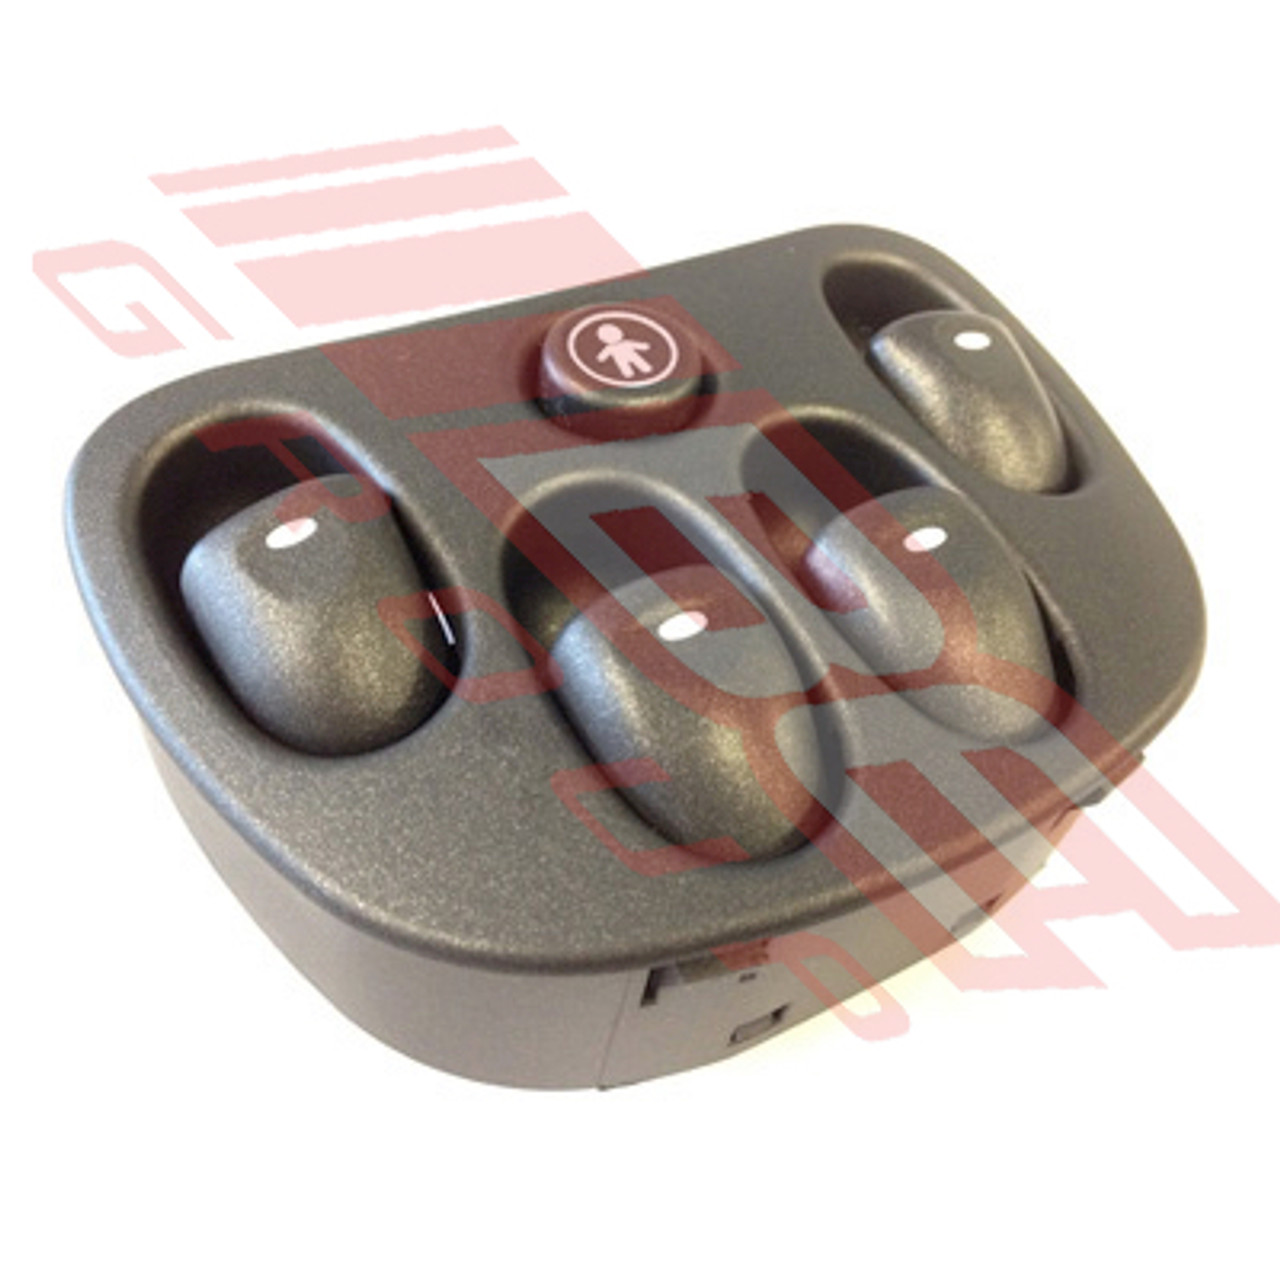 2816062-1 -DOOR WINDOW SWITCH -CENTRE CONSOLE -TO SUIT HOLDEN COMMODORE  VT/VX 1997-